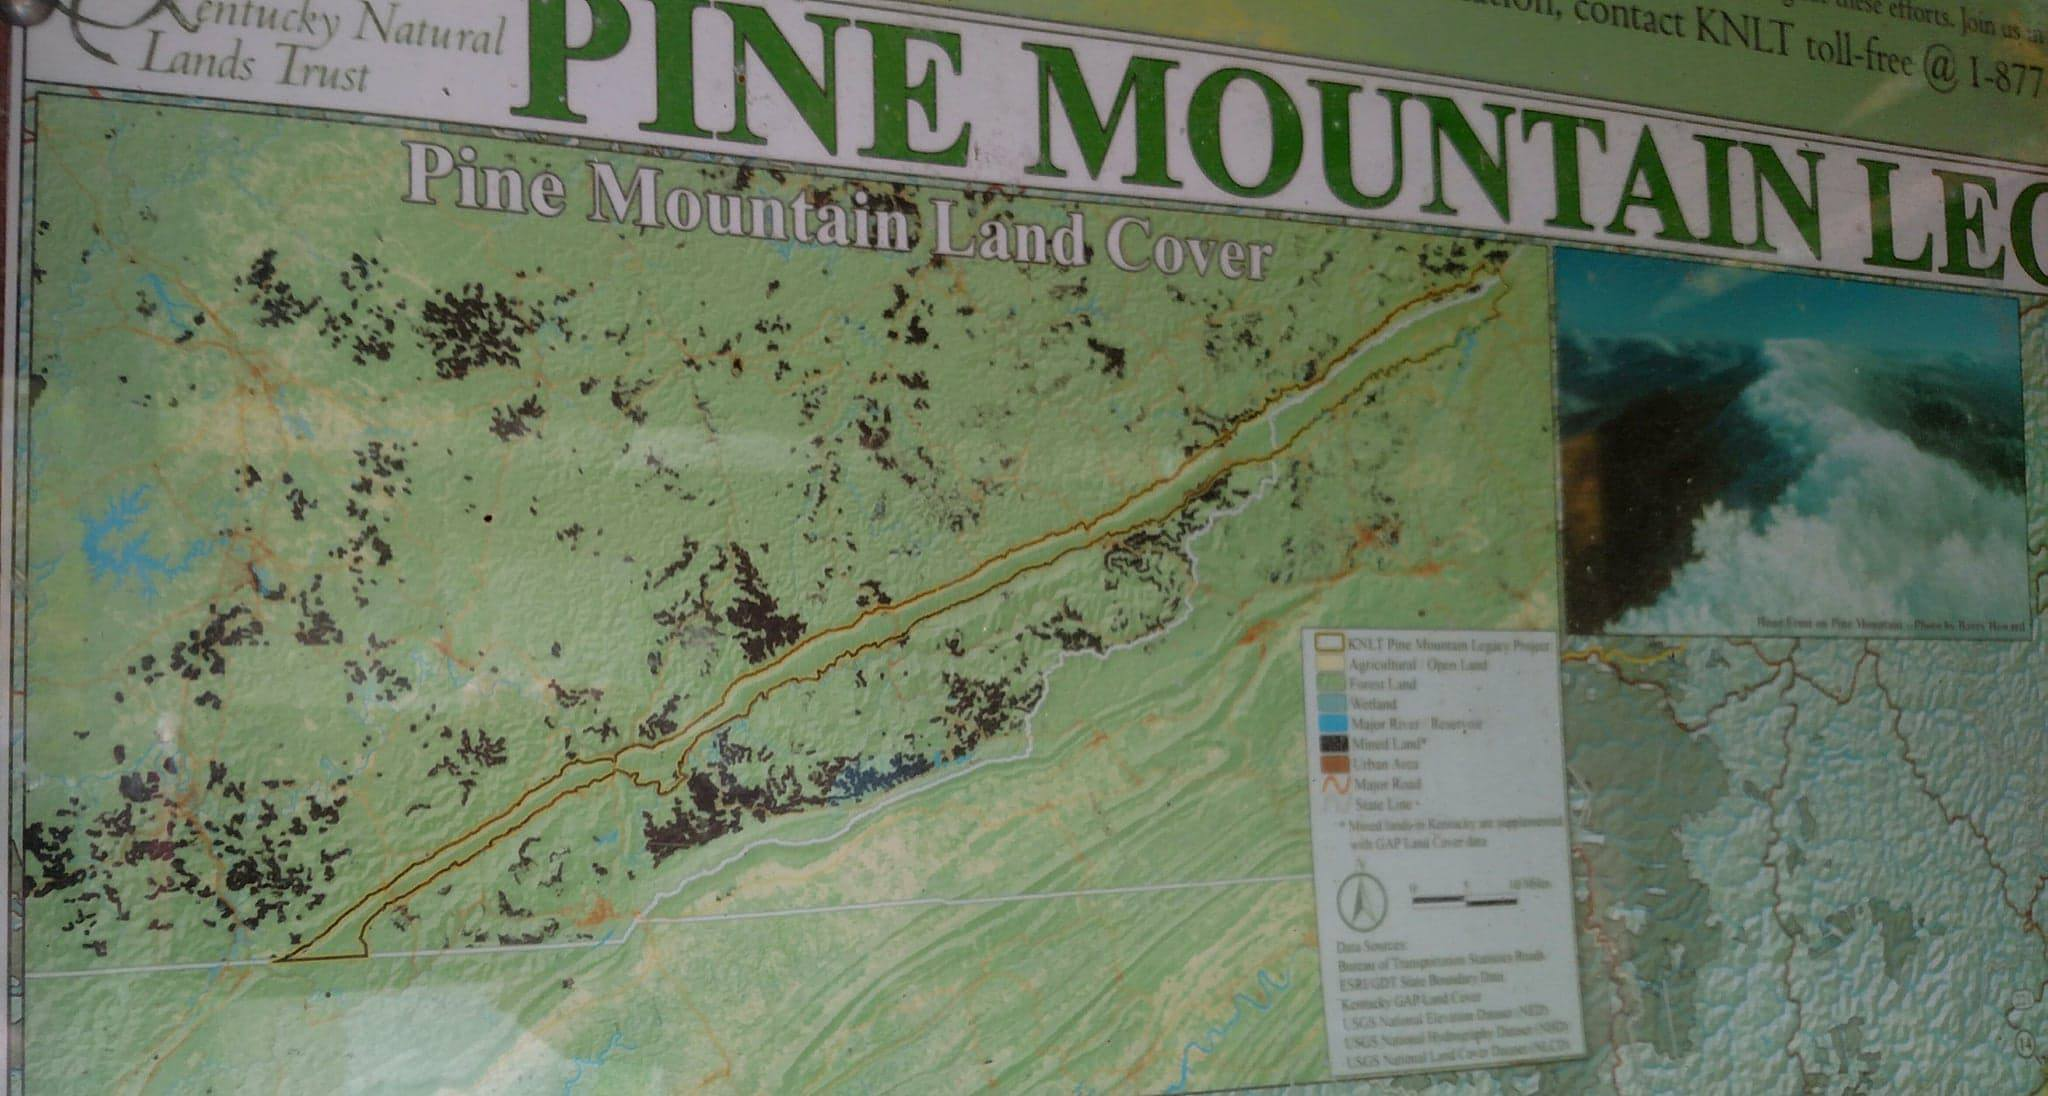 Notice all the mining sites marked in brown on both sides of the Pine Mountain corridor.